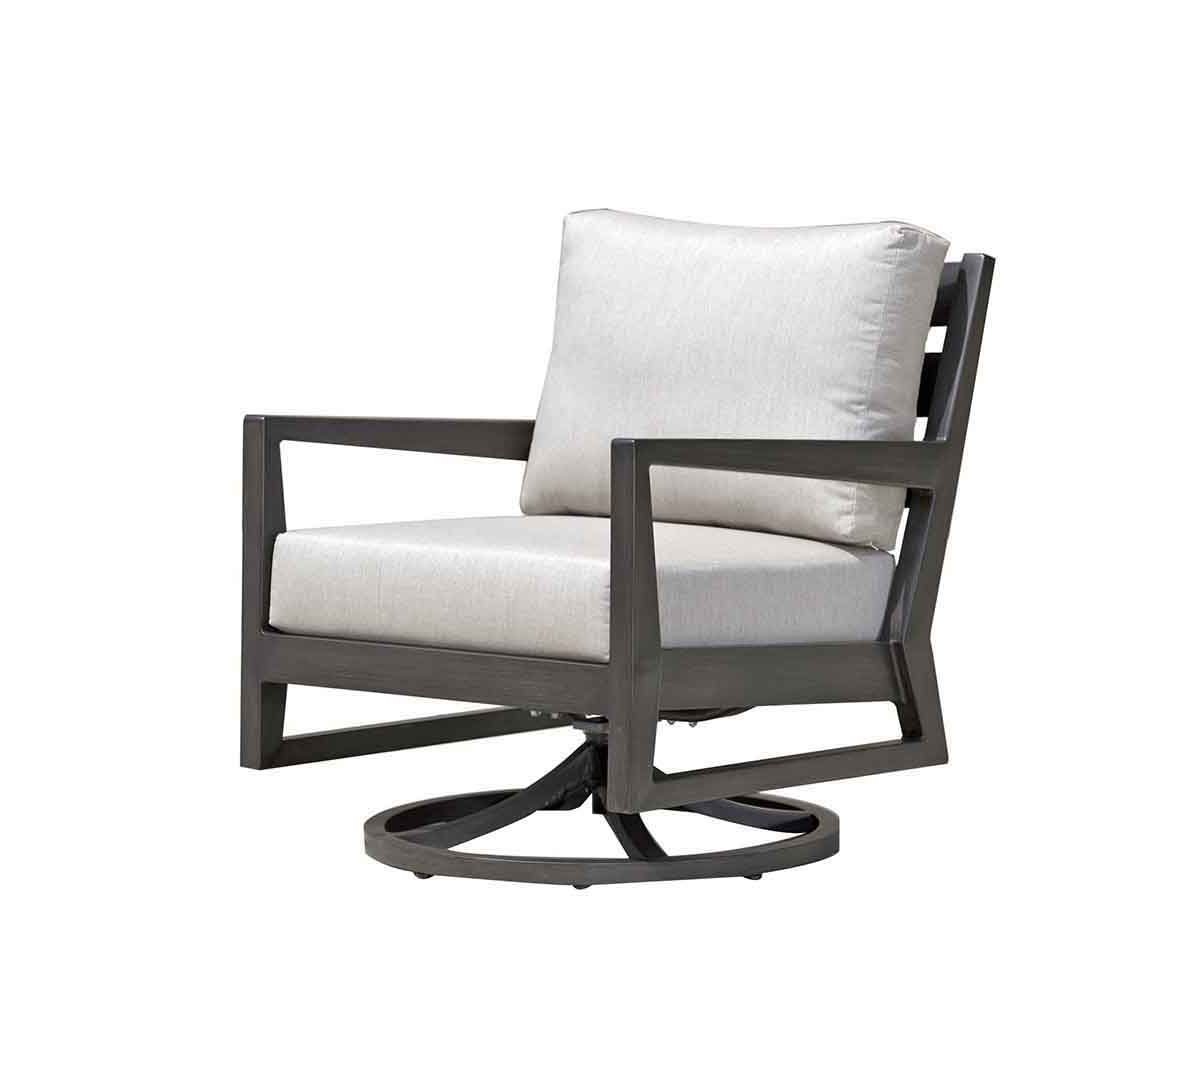 Lucia swivel rocker patio chair in metal frame with light grey cushions.